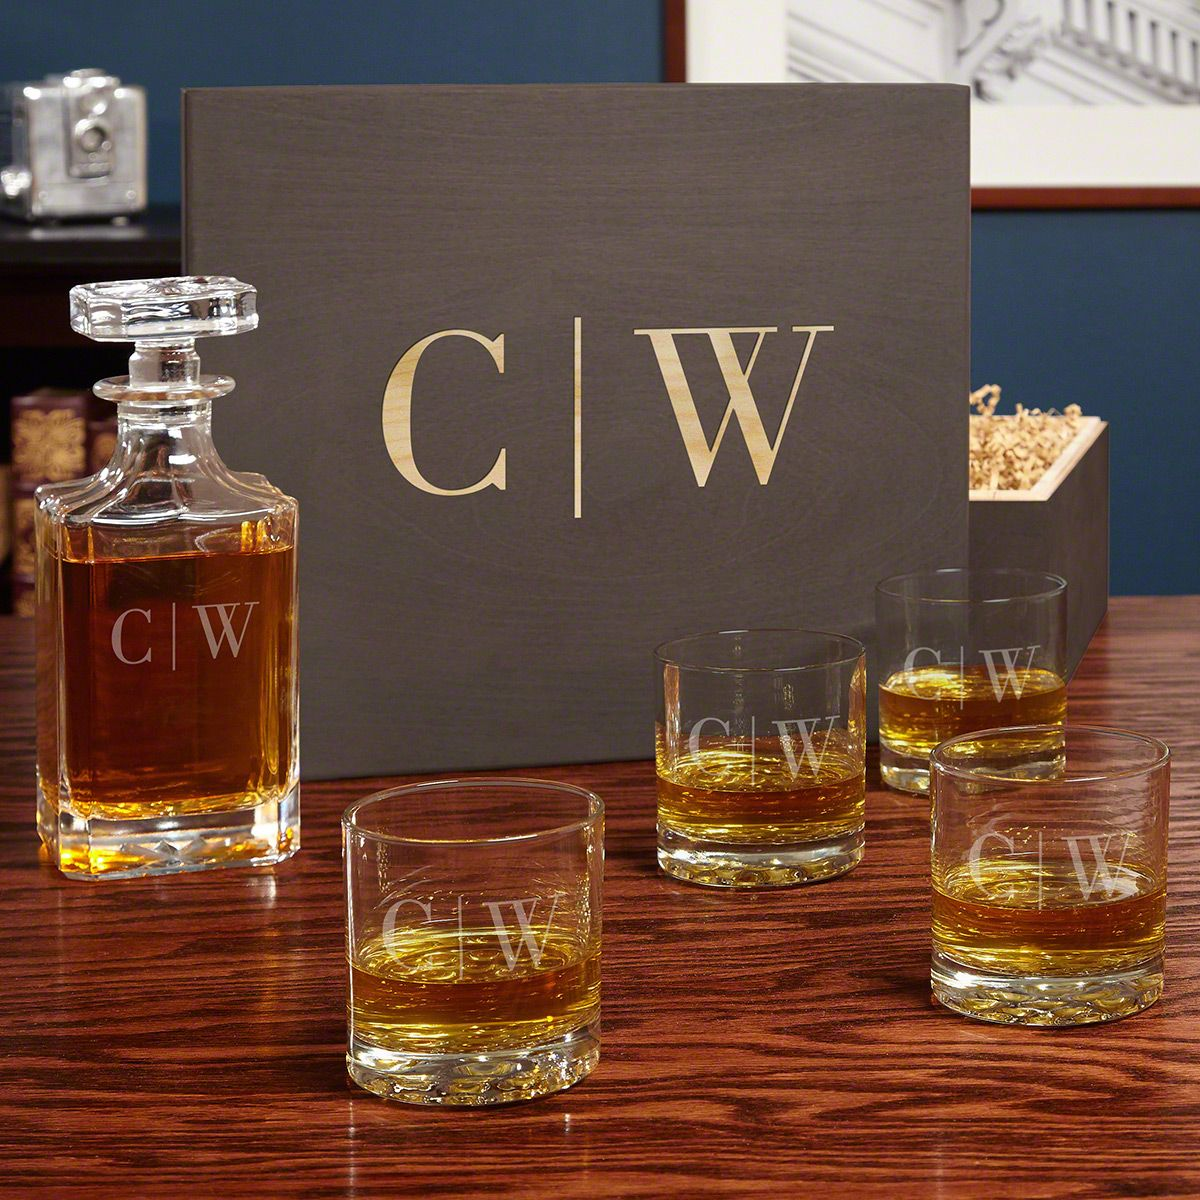 Quinton Boxed Decanter Set with Personalized Glasses